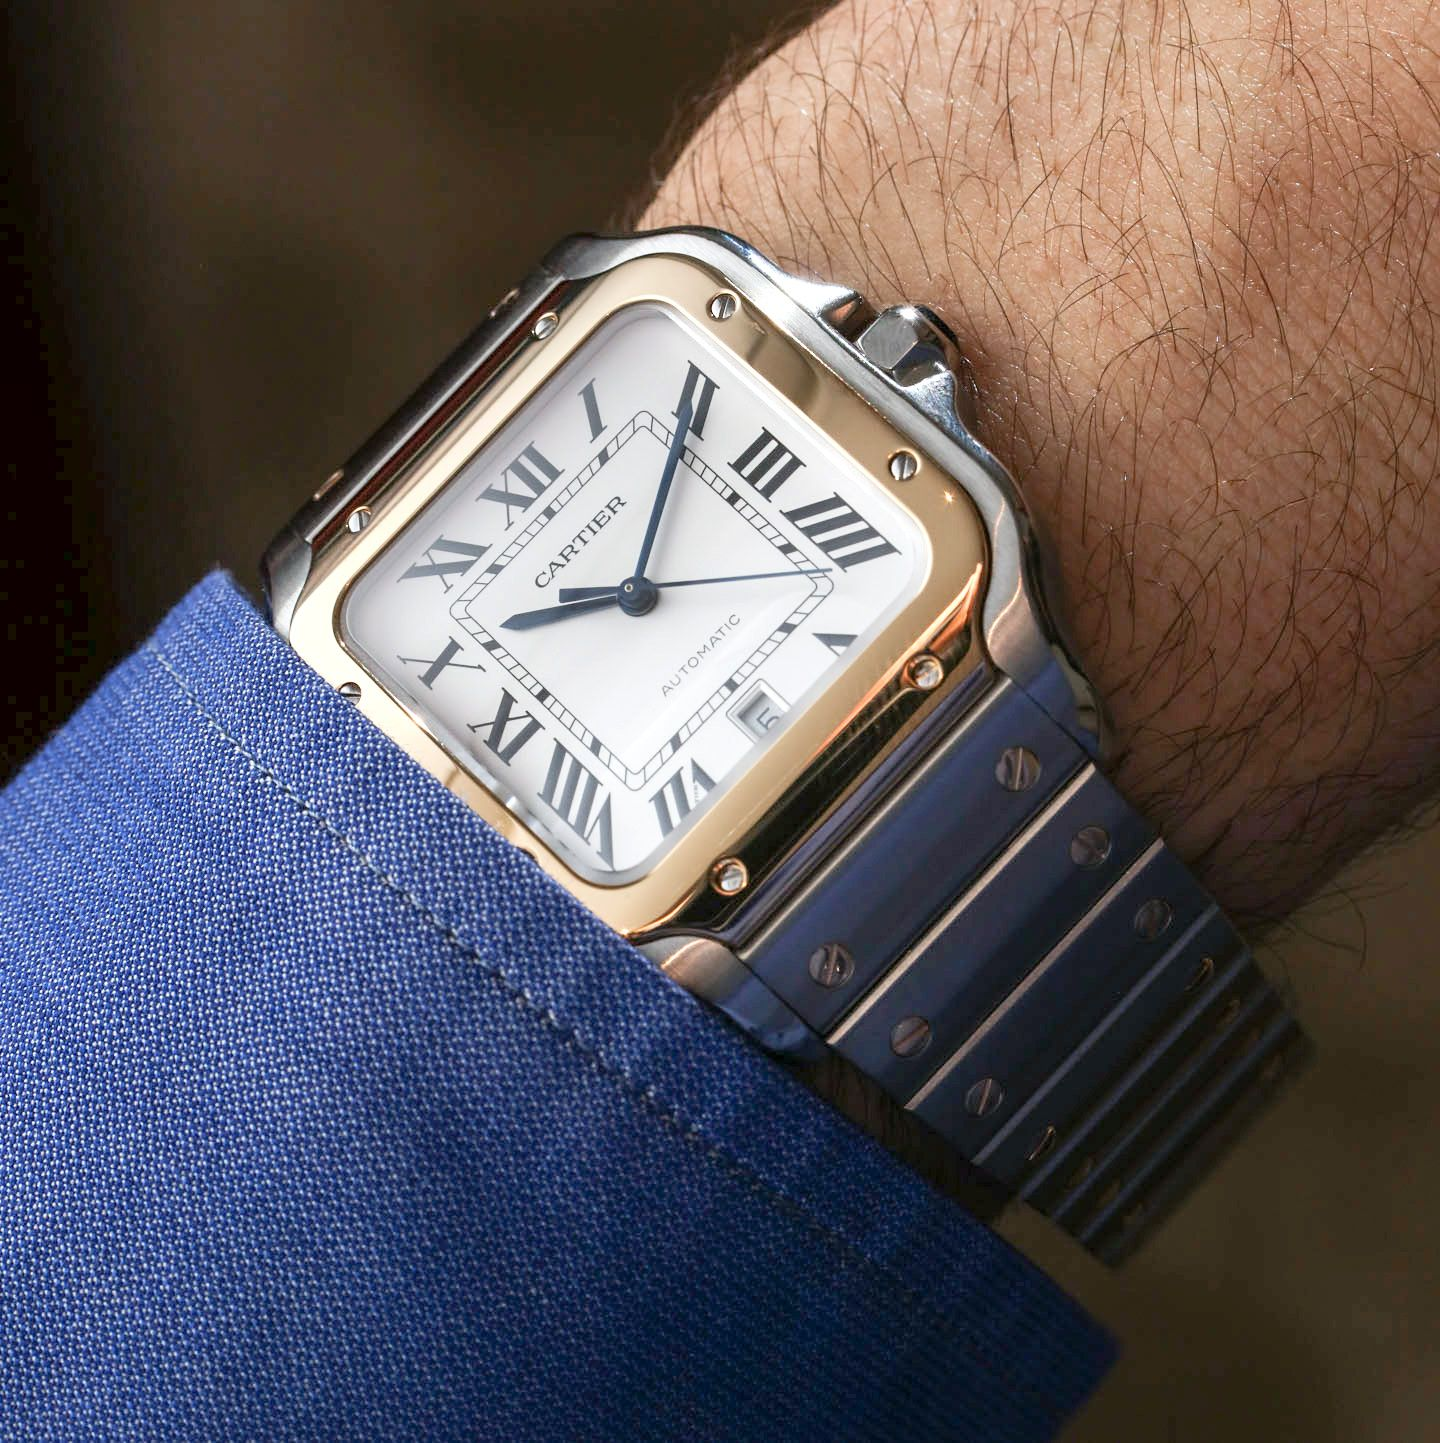 eeb972985cb4c The 2018 Santos collection features a lot of exciting new things for ...